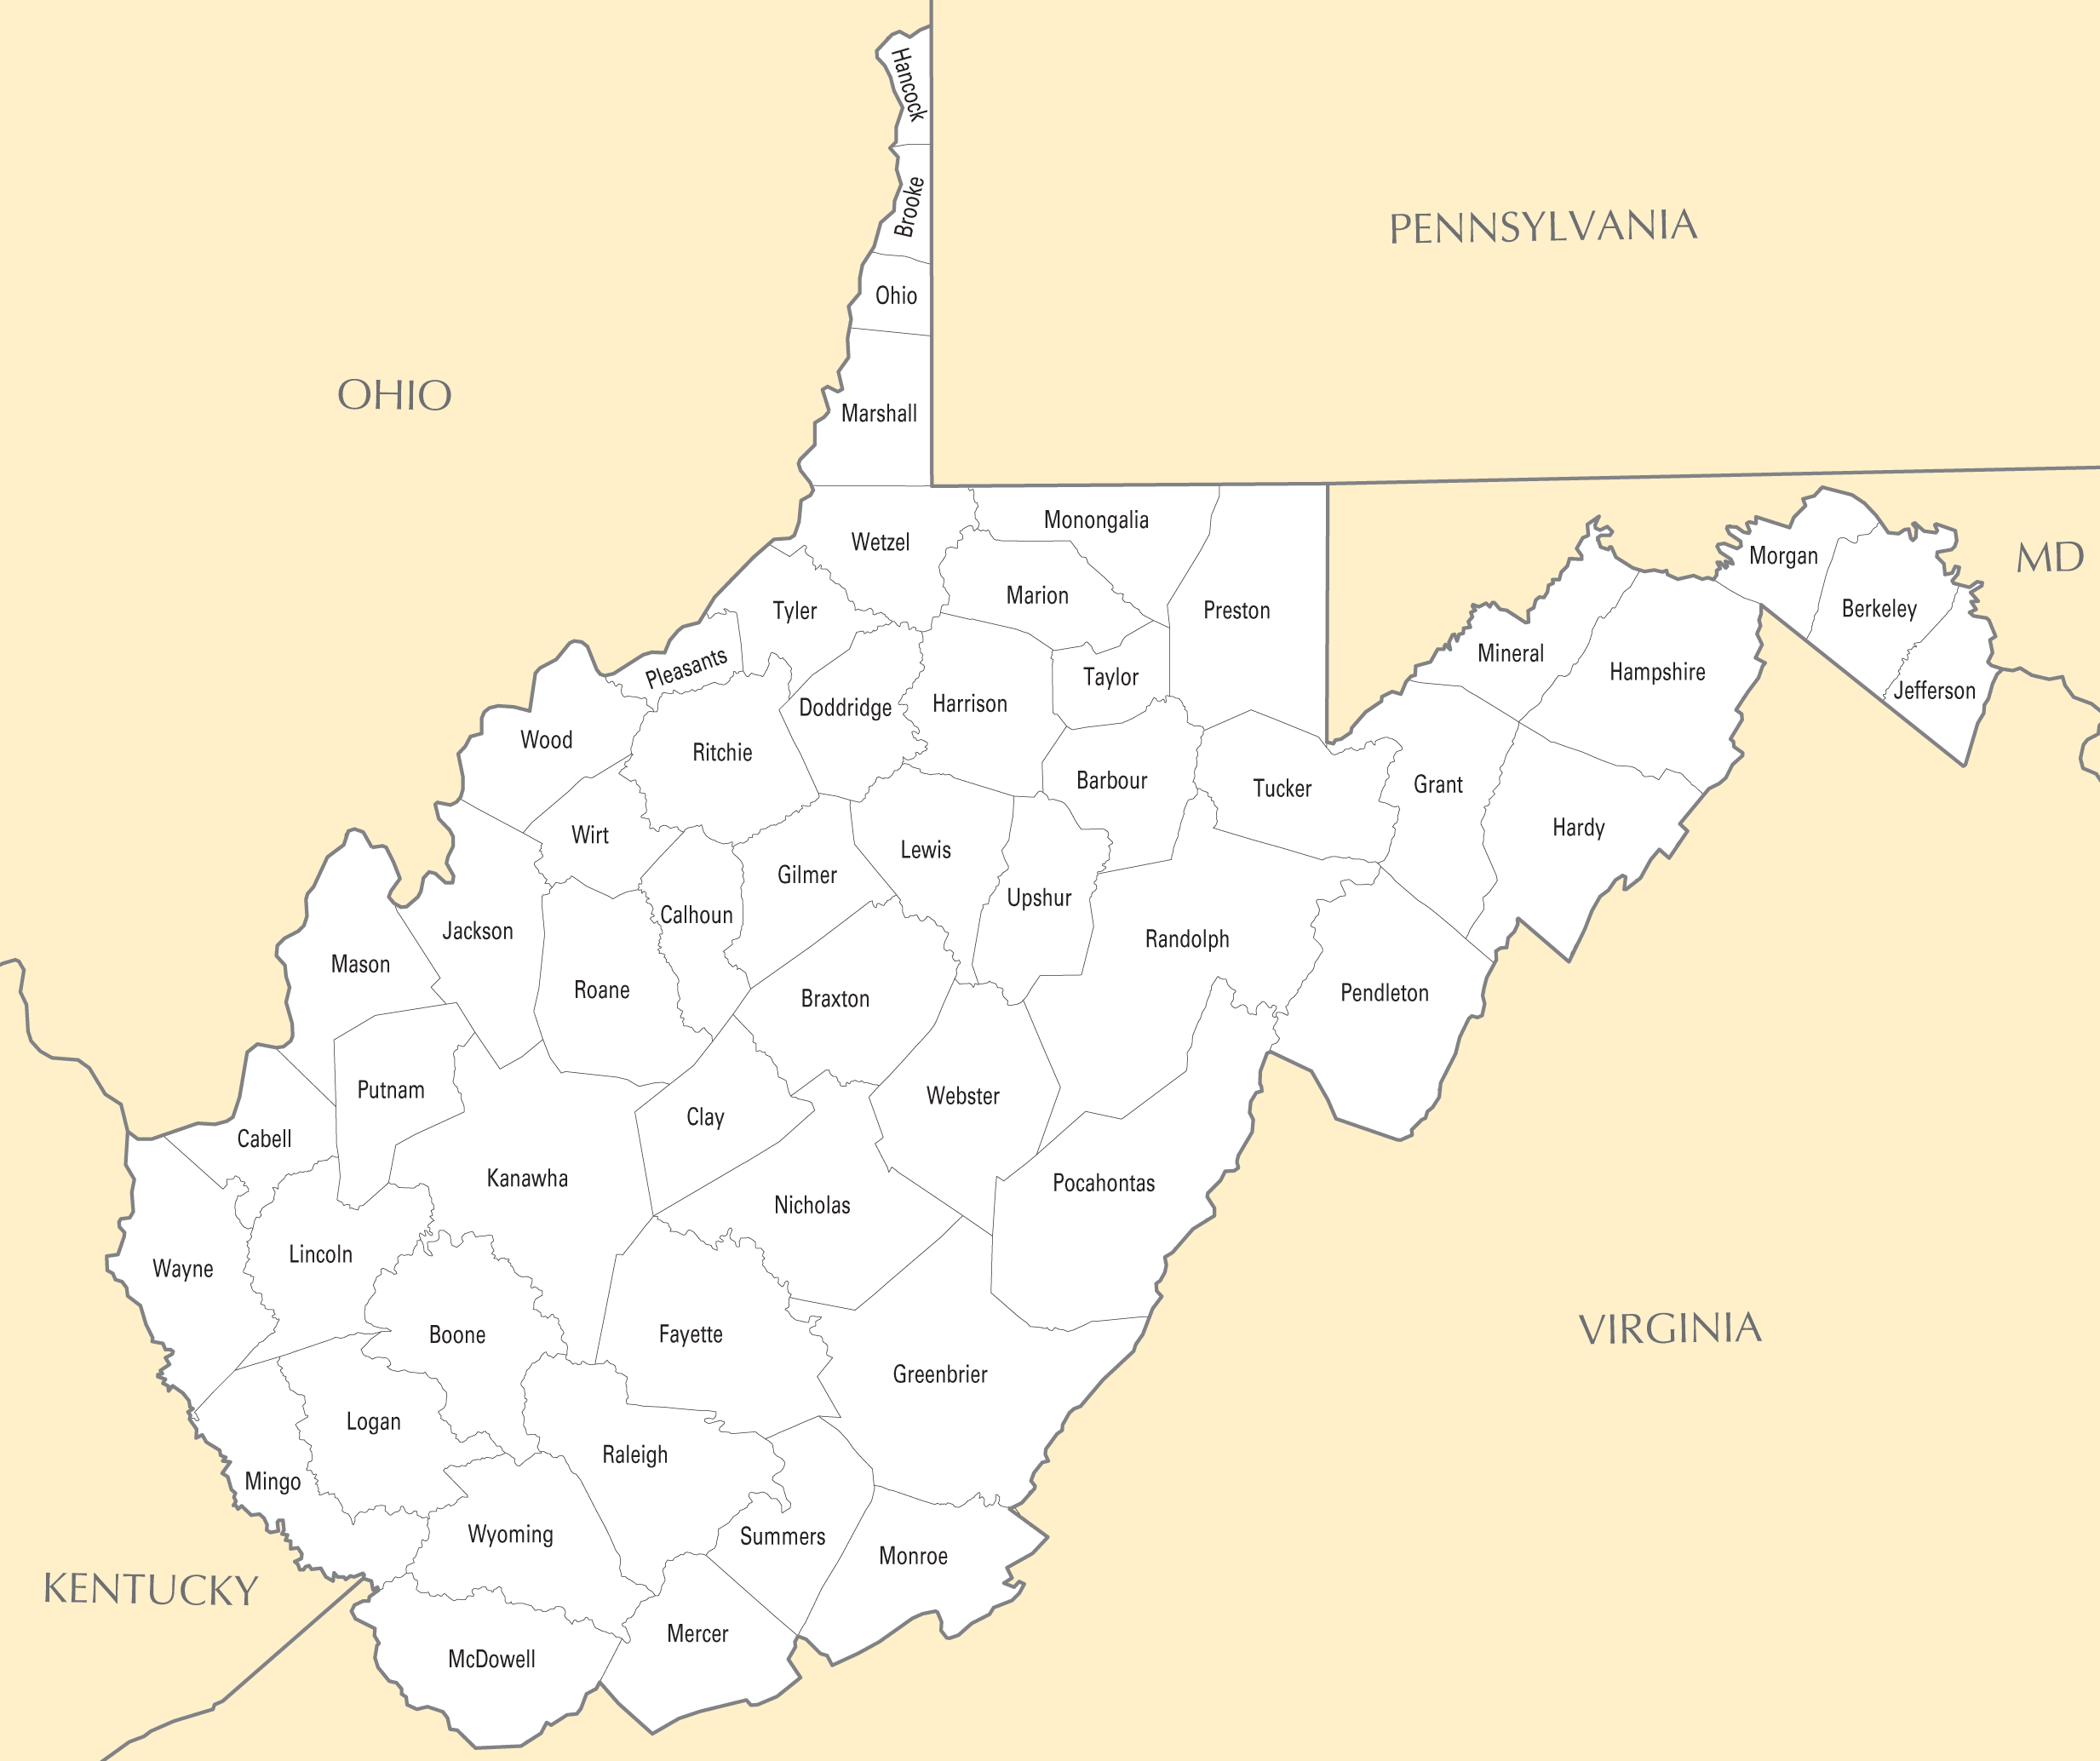 Map Of Va Counties Map Of Counties In Kansas - West virginia map showing counties